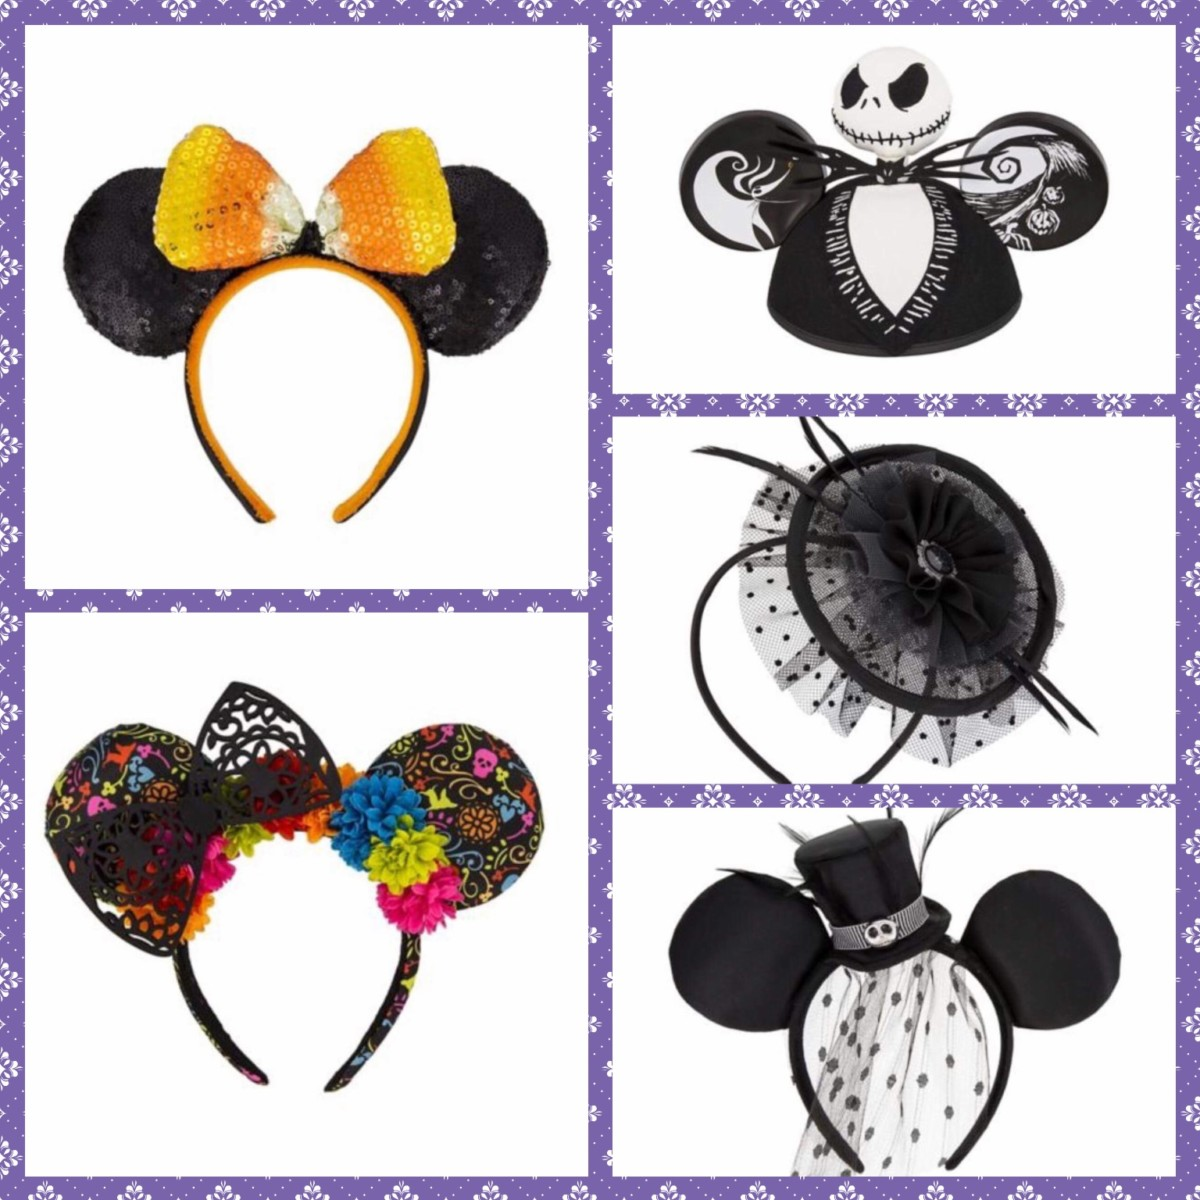 New Halloween and Christmas Ears Coming Soon! #DisneyStyle 3